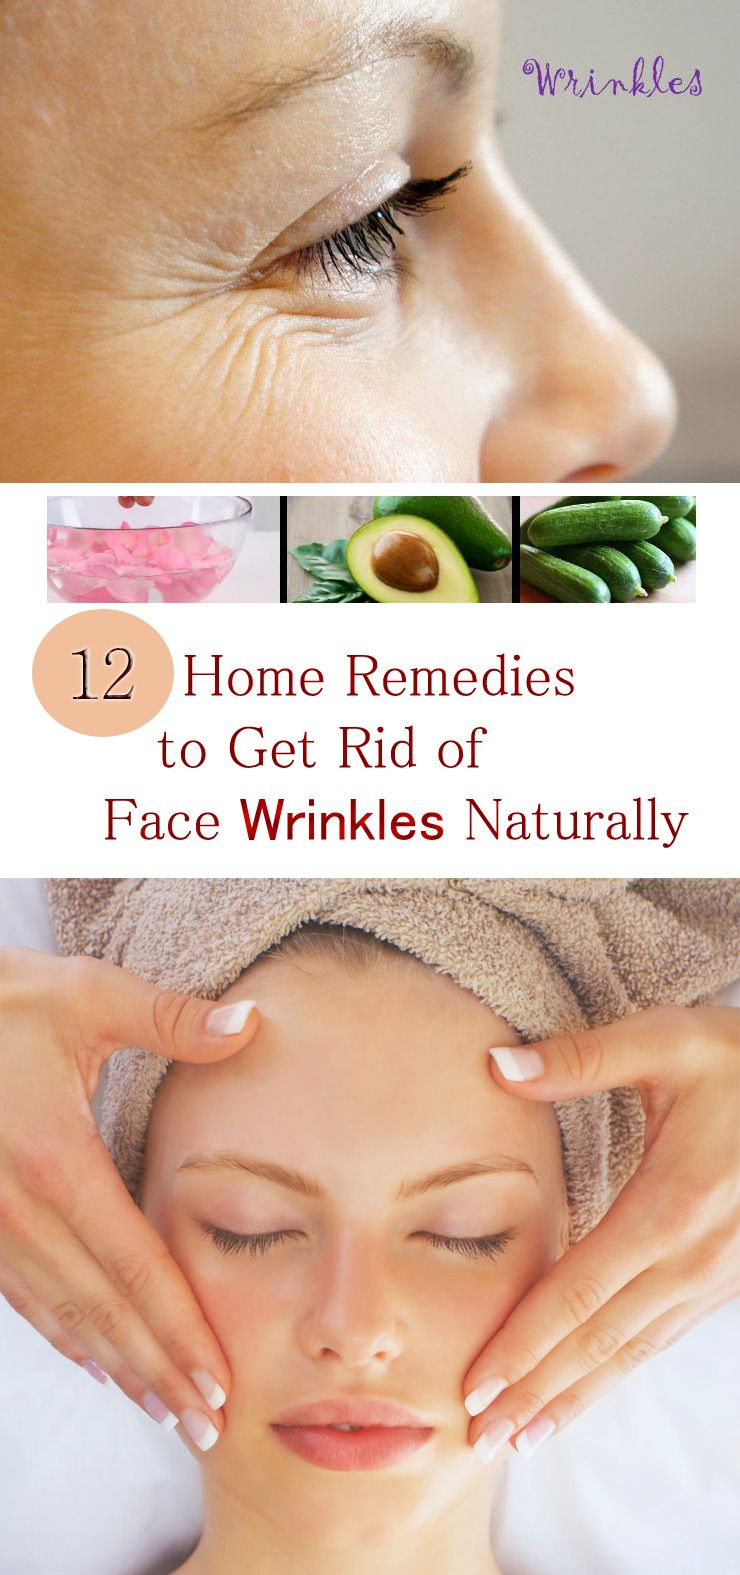 home remedies care 12 easy home remedies to get rid of wrinkles